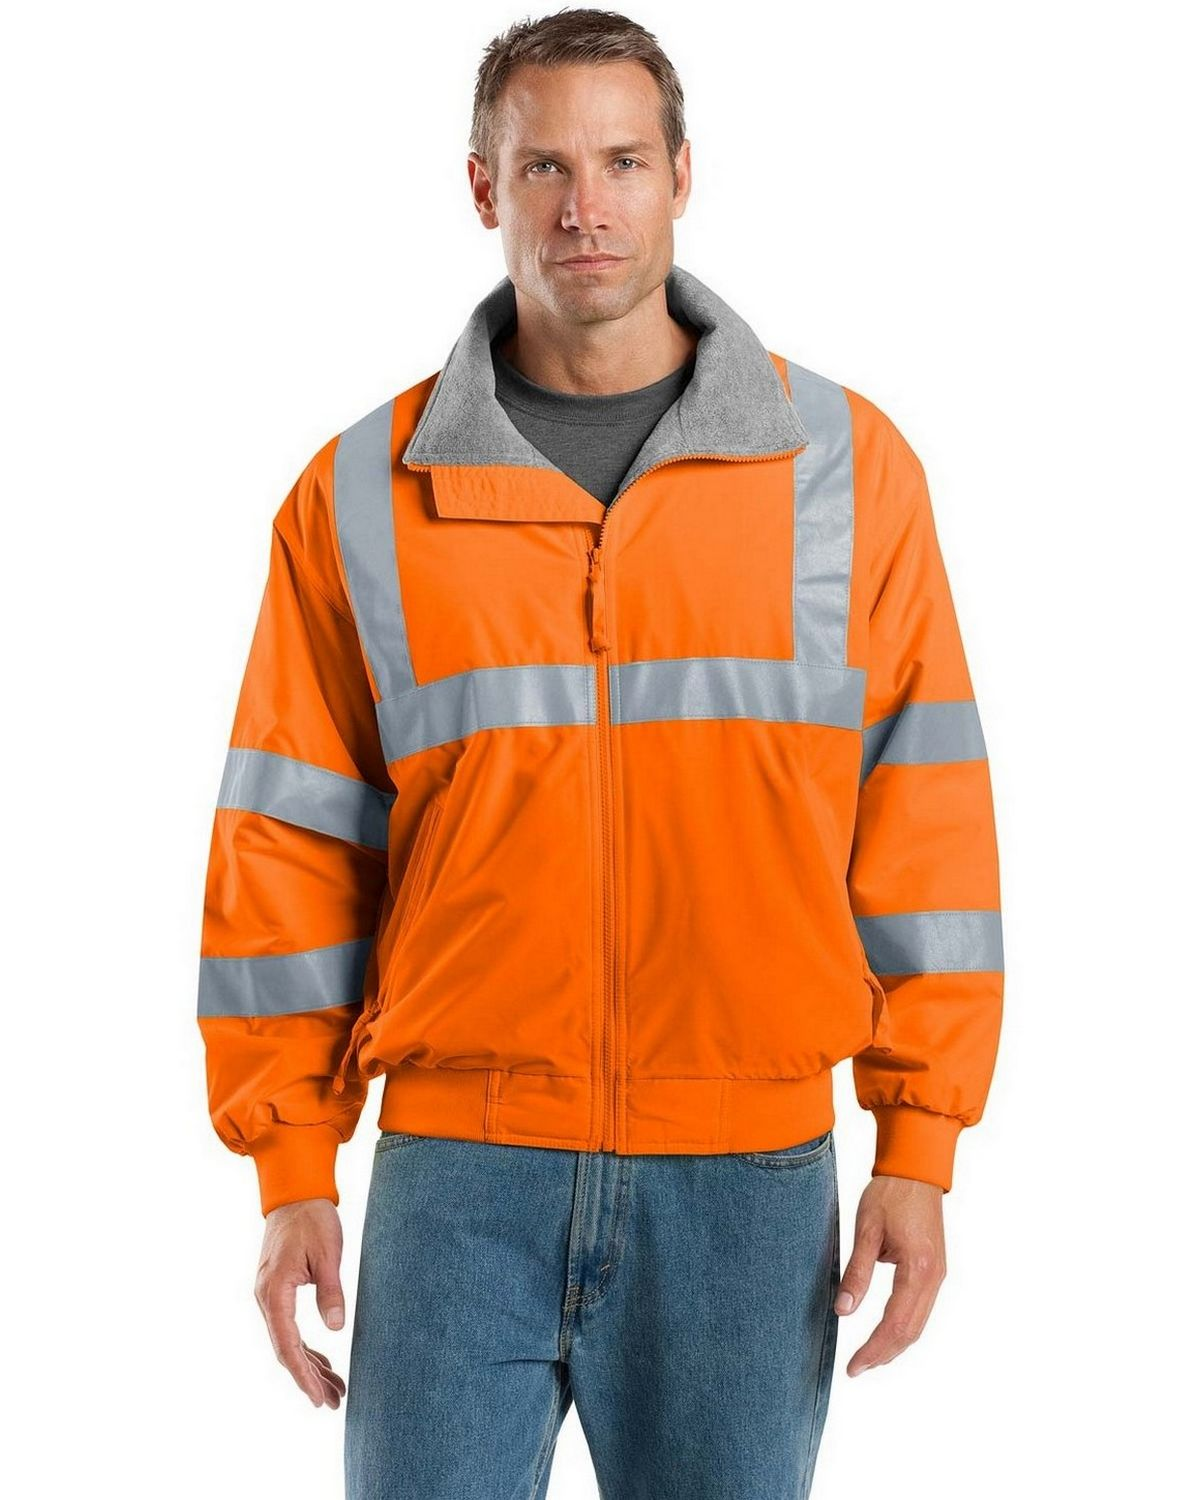 Port Authority SRJ754 Men's Safety Challenger Jacket with Reflective Taping - Safety Orange/Reflective - XS from Port Authority